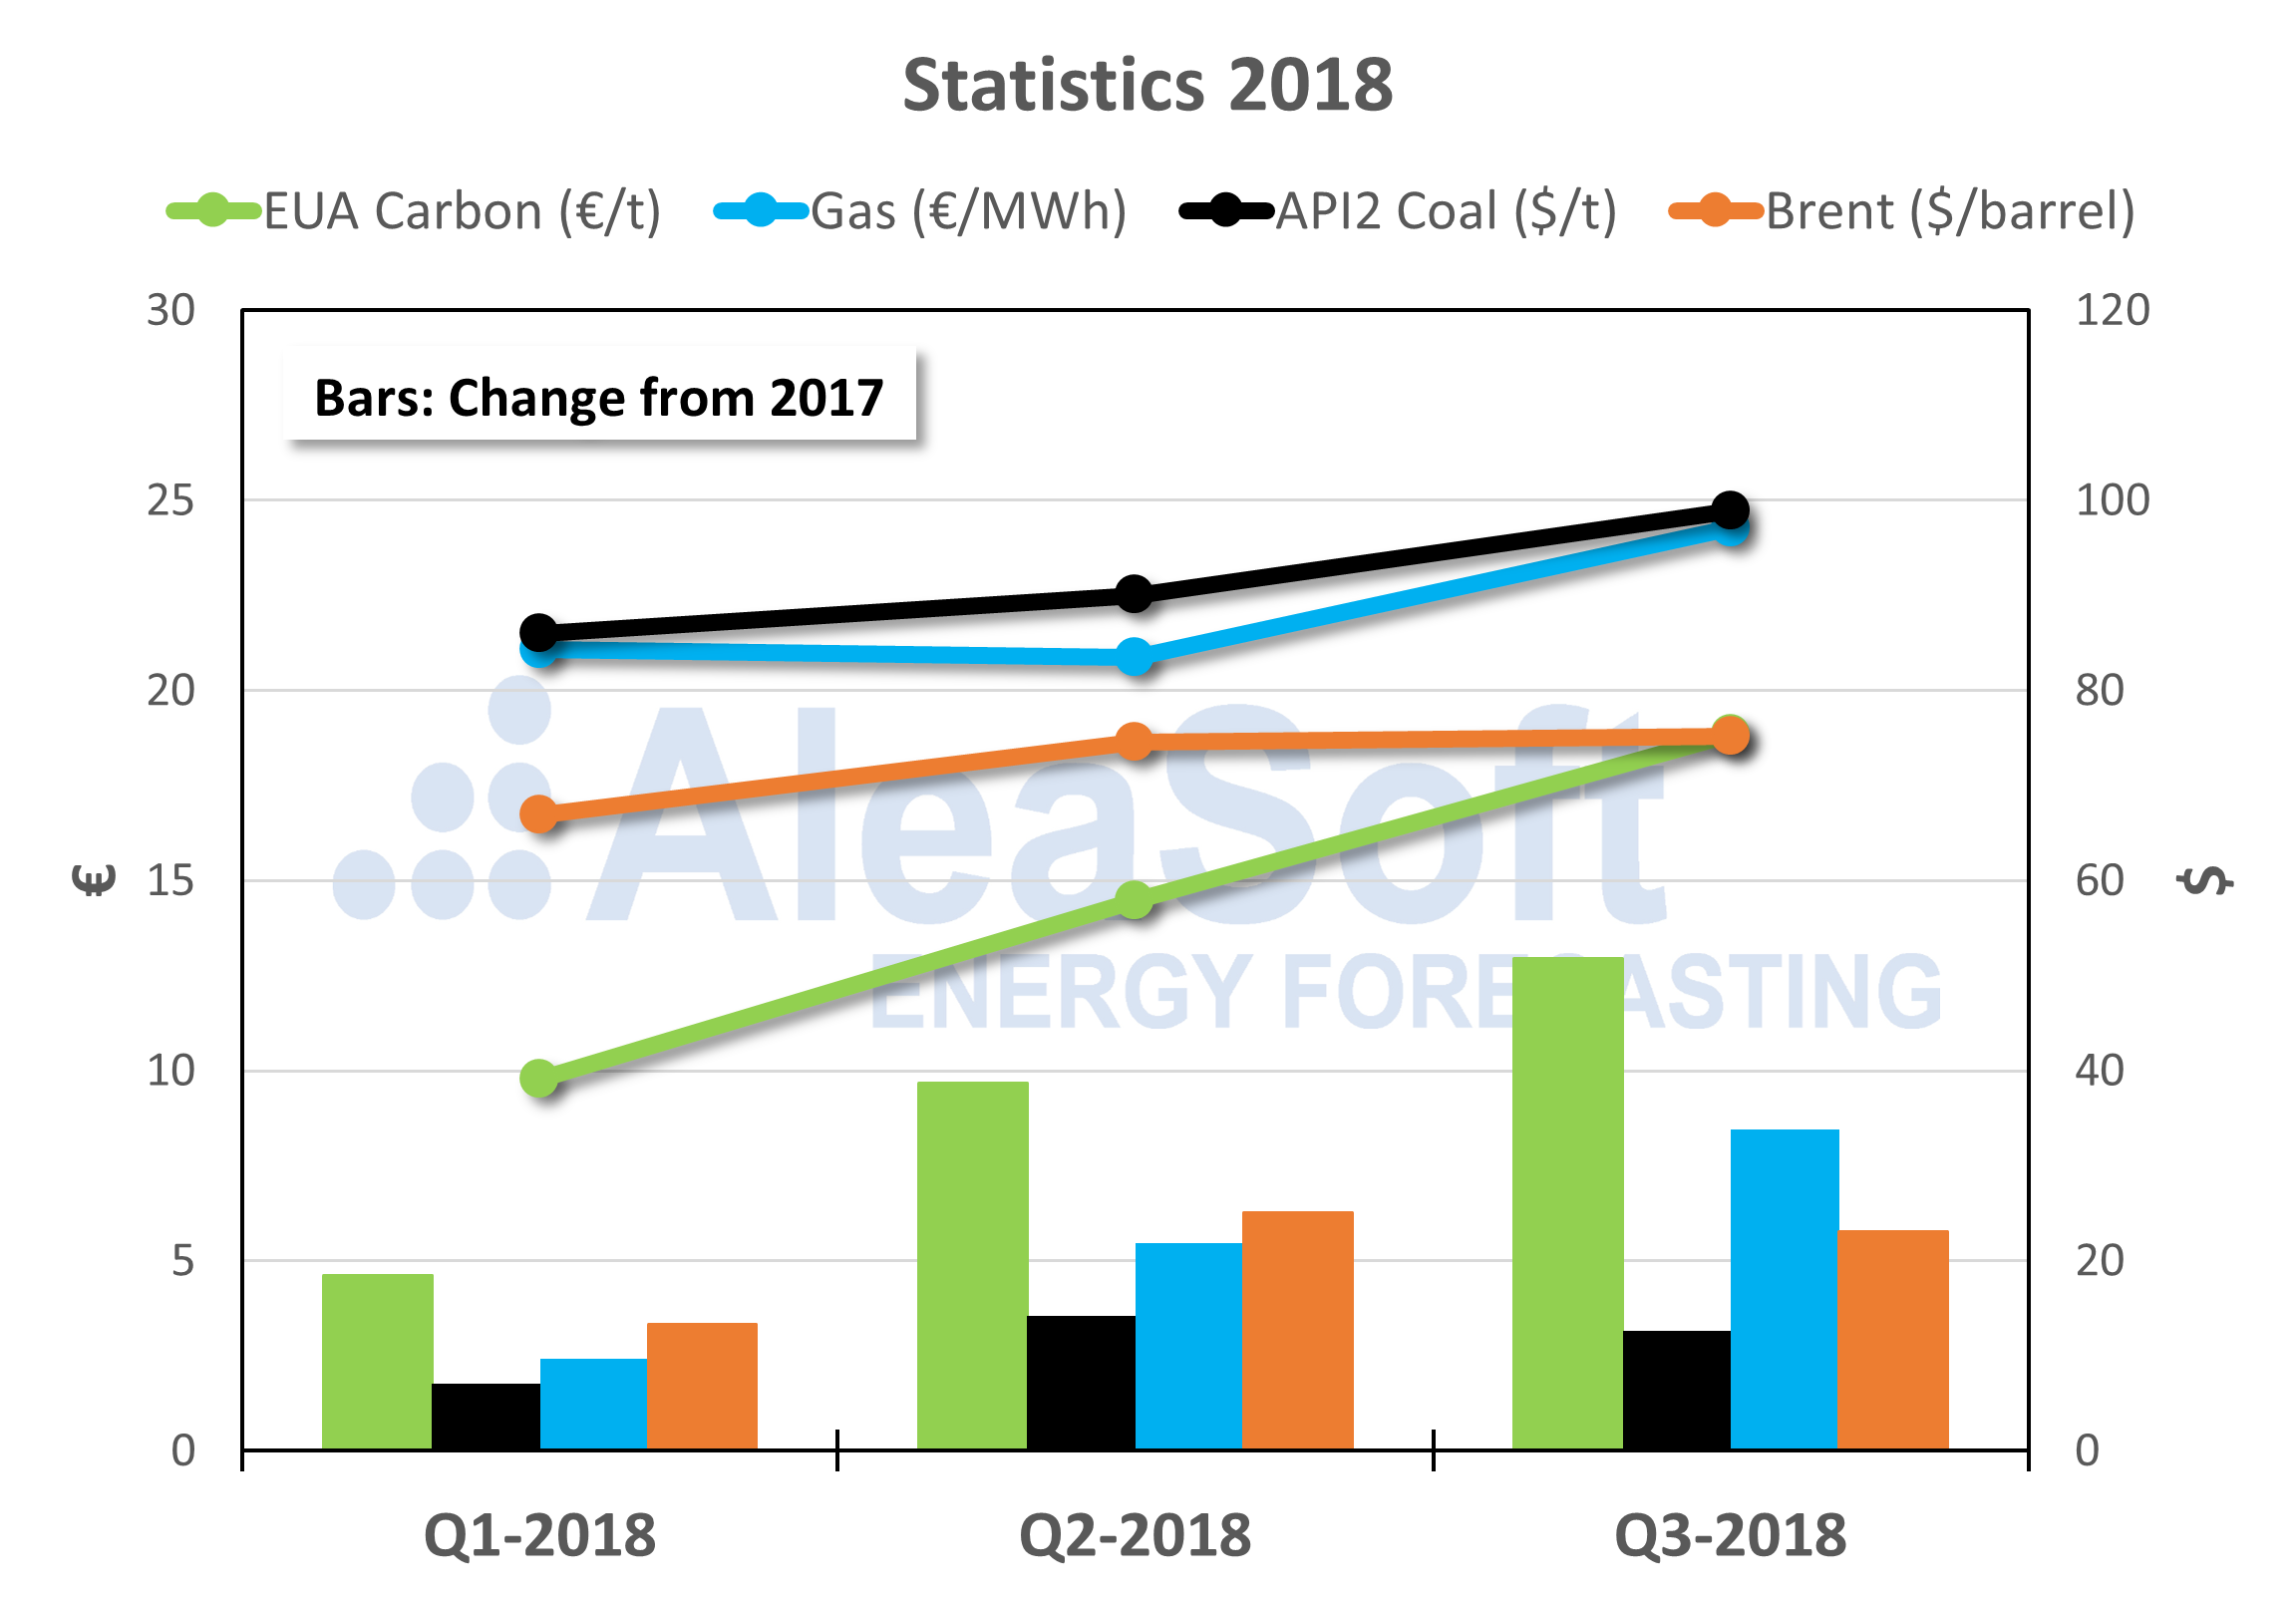 AleaSoft - Price carbon brent gas coal europe